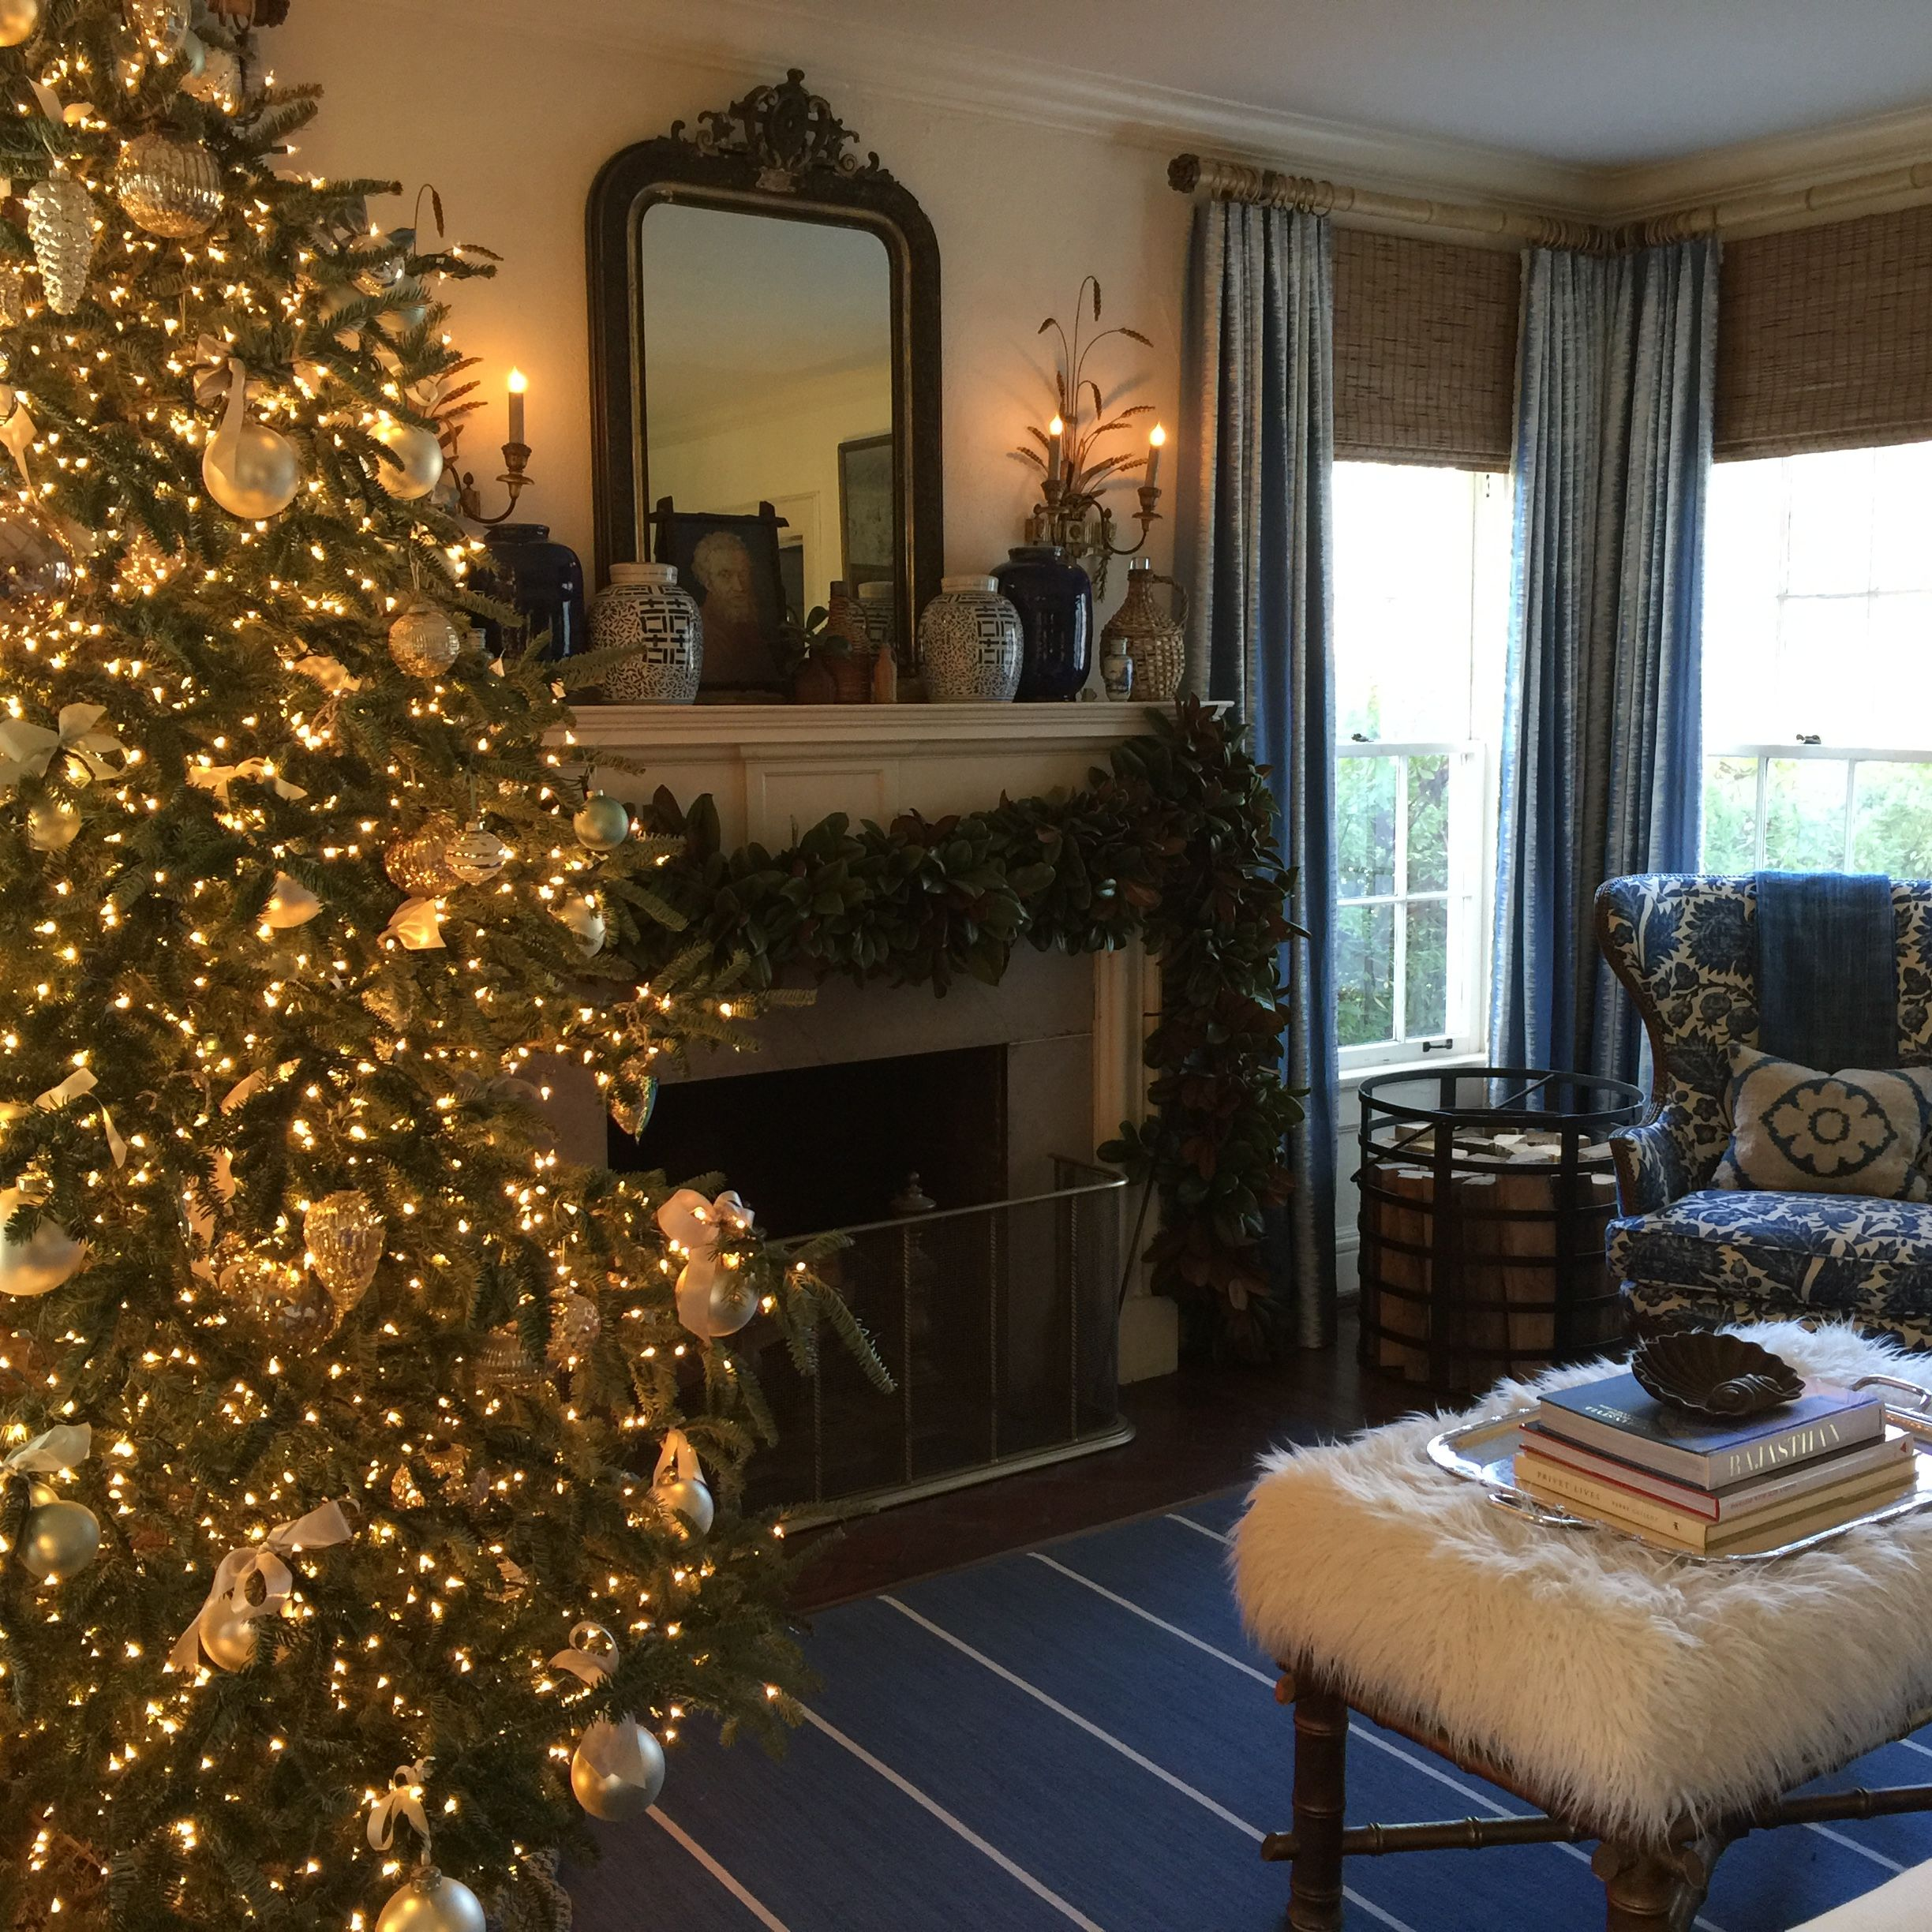 A Warm Welcome Awaits on IPC Holiday House Tour